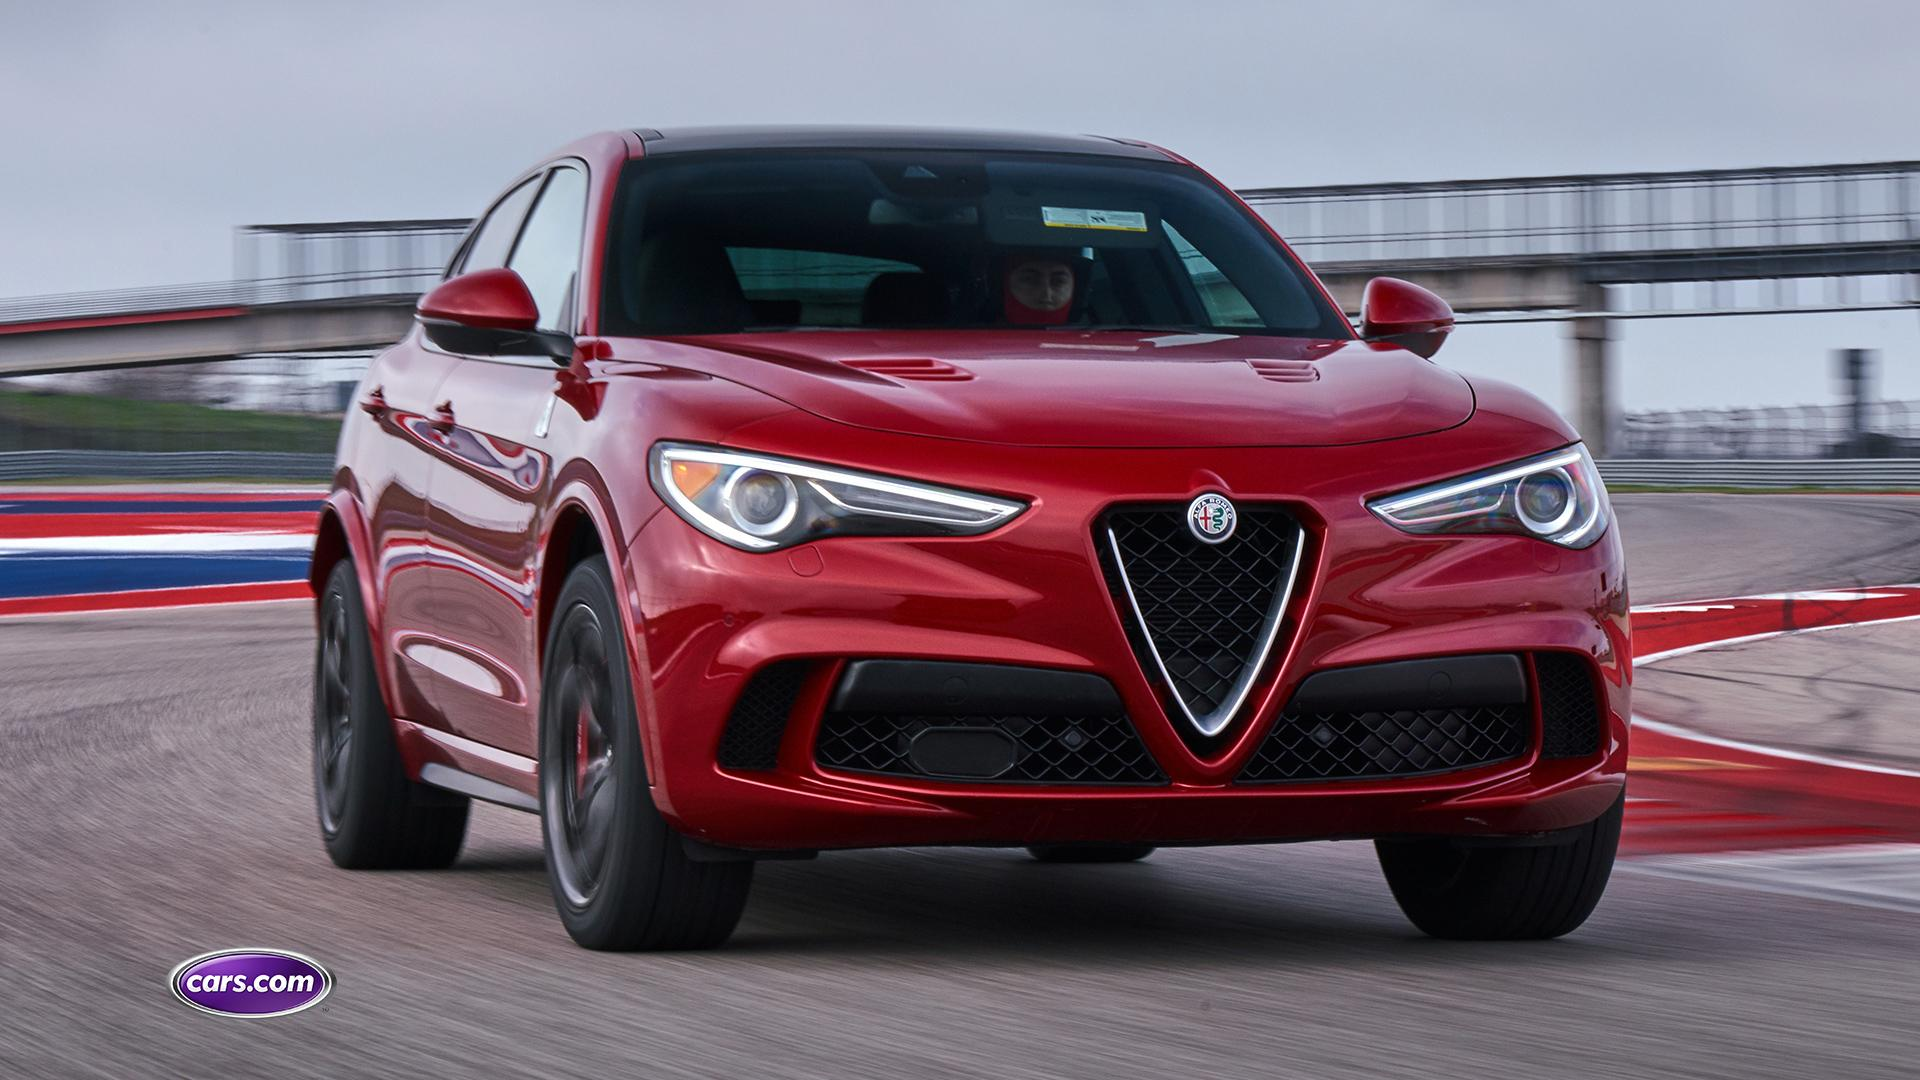 Video: 2018 Alfa Romeo Stelvio Quadrifoglio — Cars.com